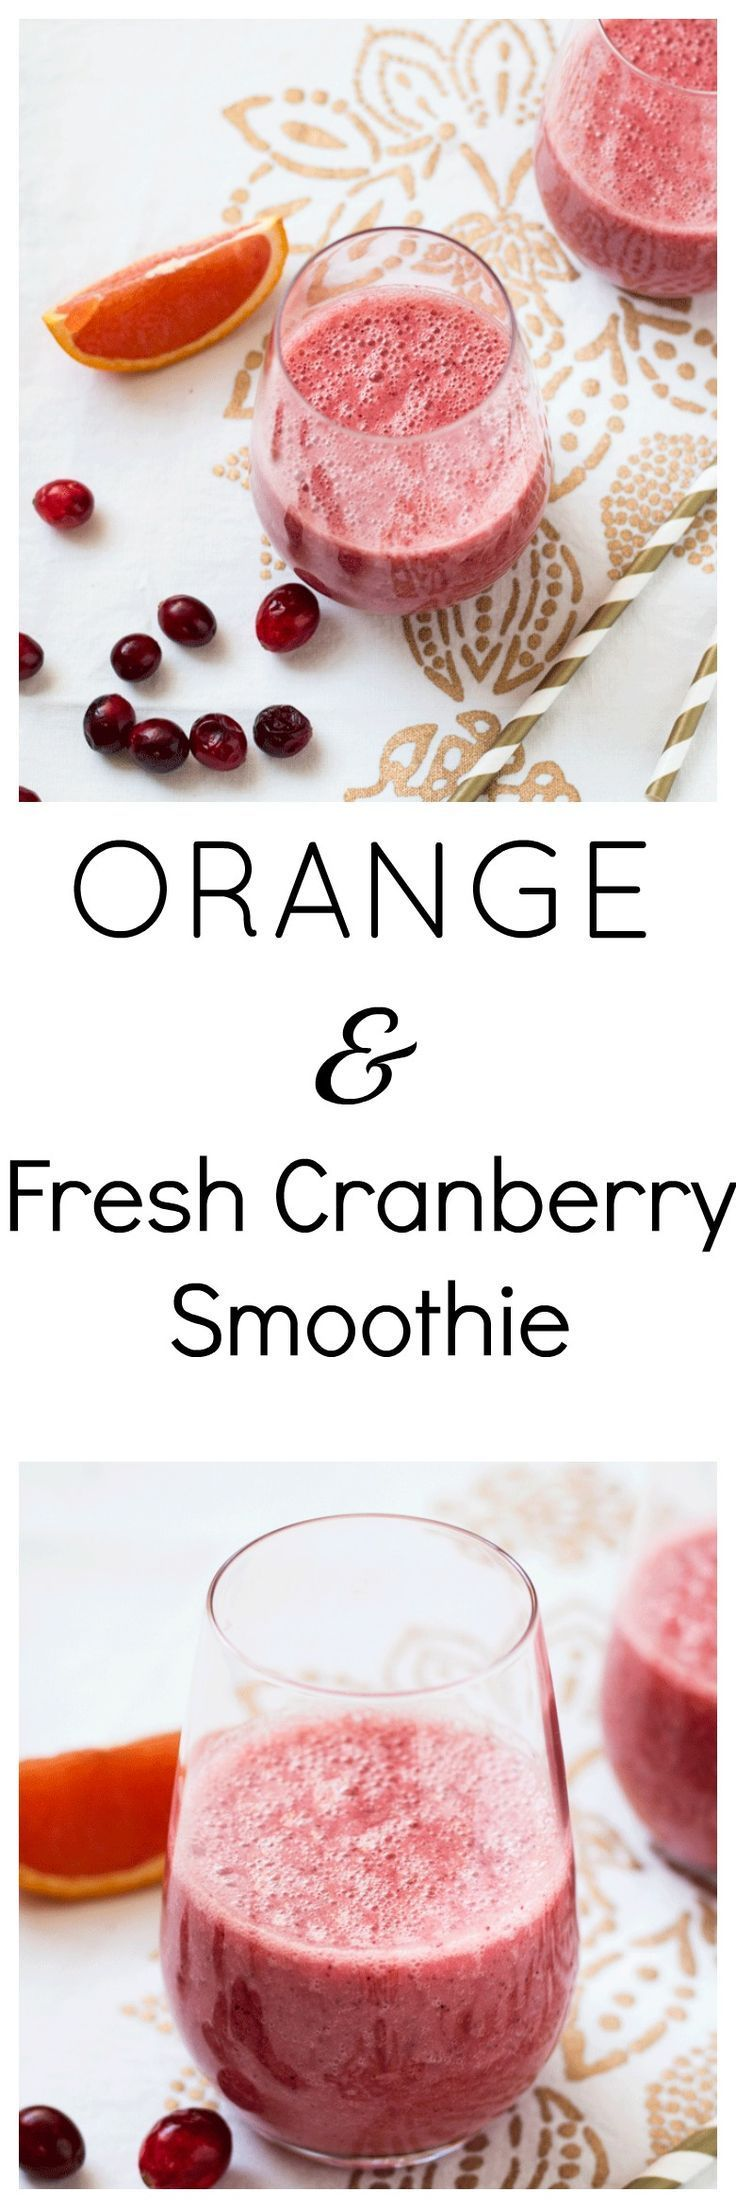 Rejuvenating Orange and Fresh Cranberry Smoothie. A quick, easy and delicious way to rejuvenate and heal your body. Packed with antioxidants via @wholefoodbellies